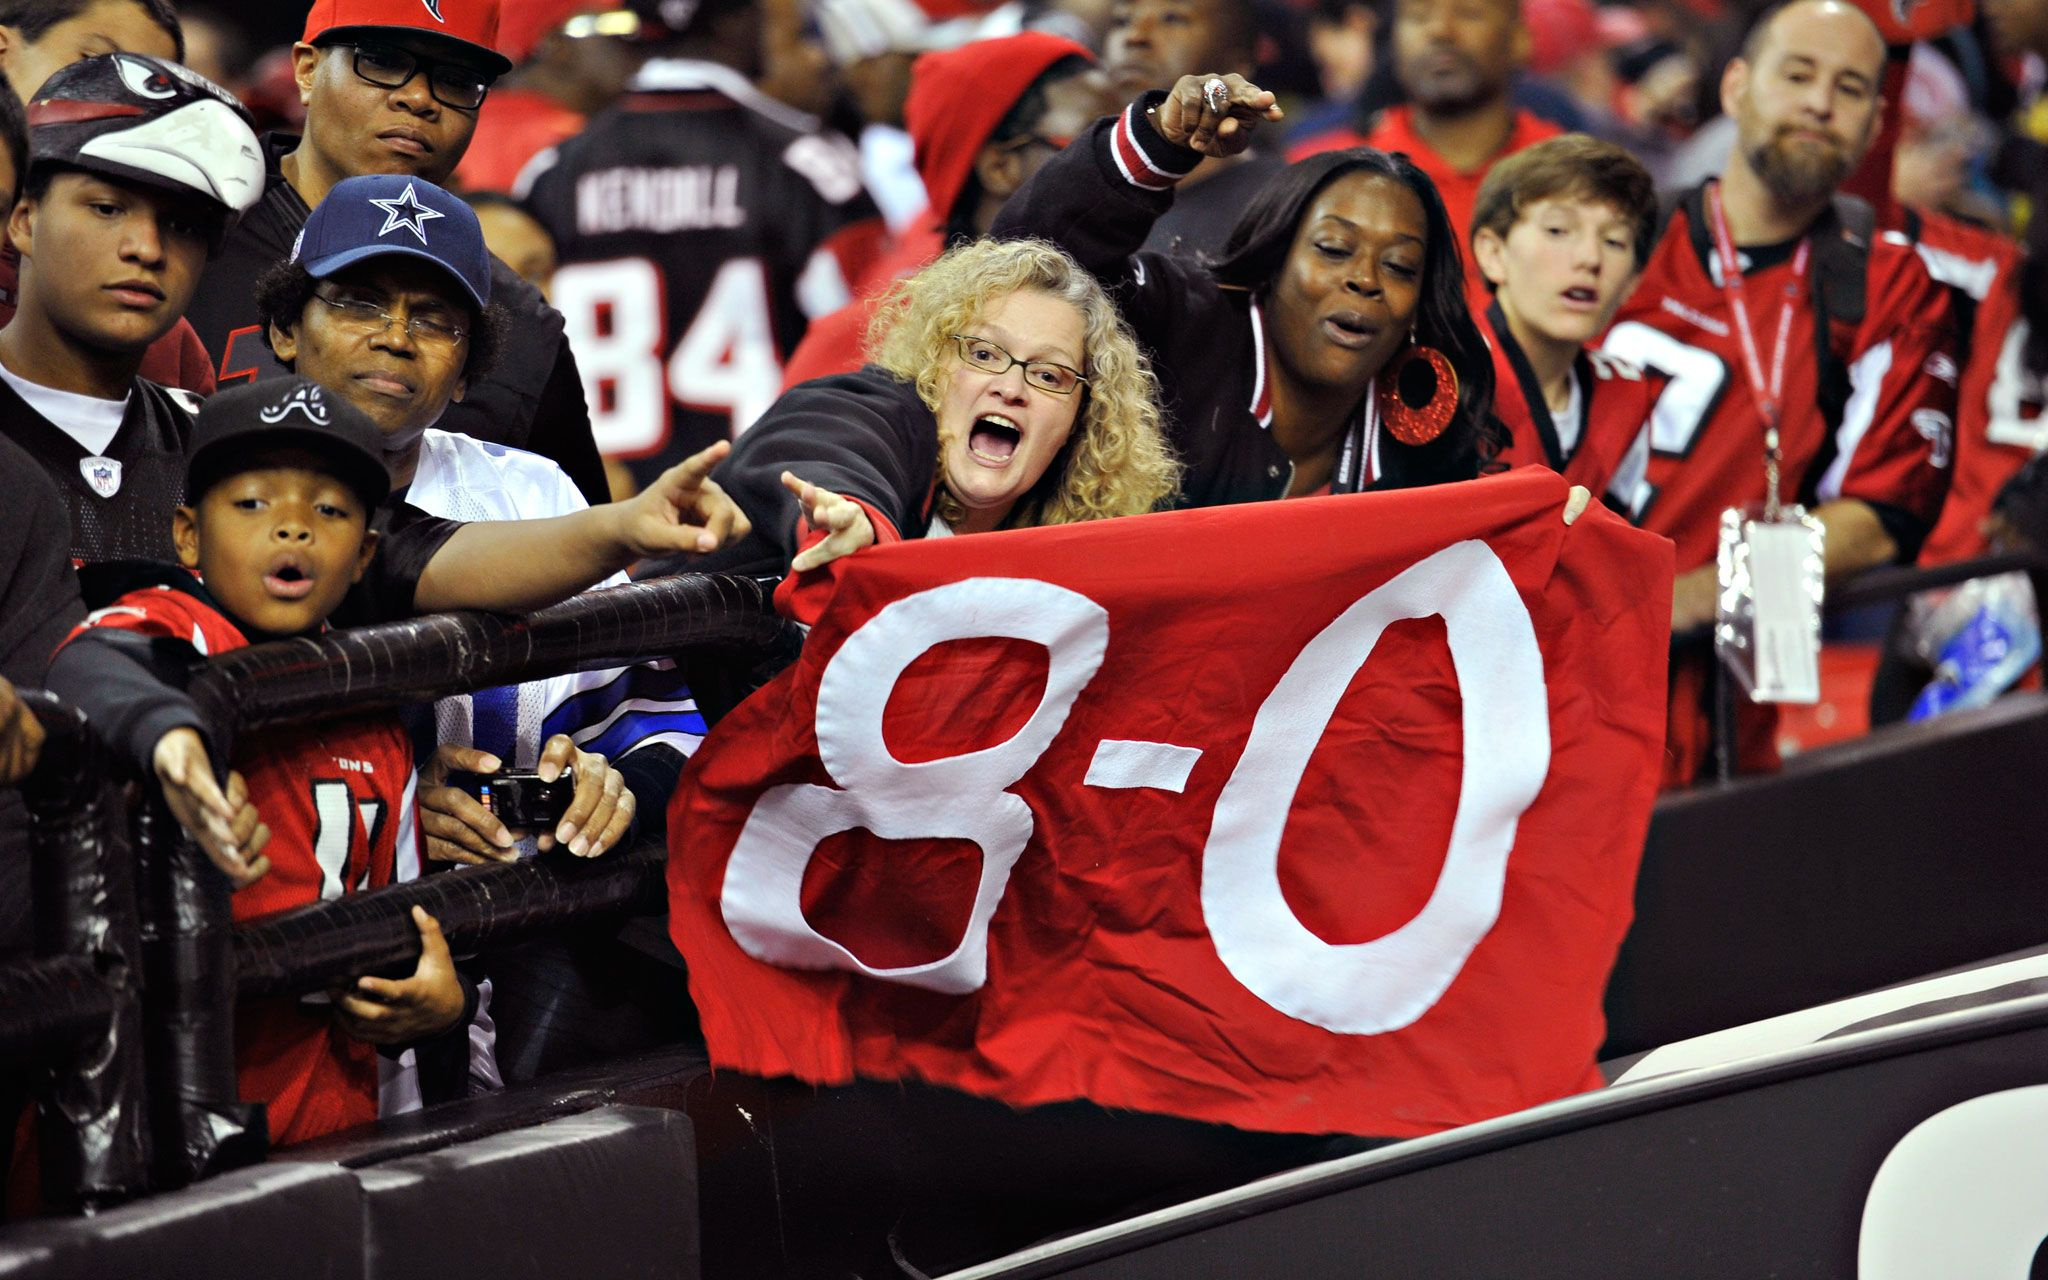 Atlanta Falcons Fans Images Google Search Atlanta Falcons Fans Falcons Fan Fan Image